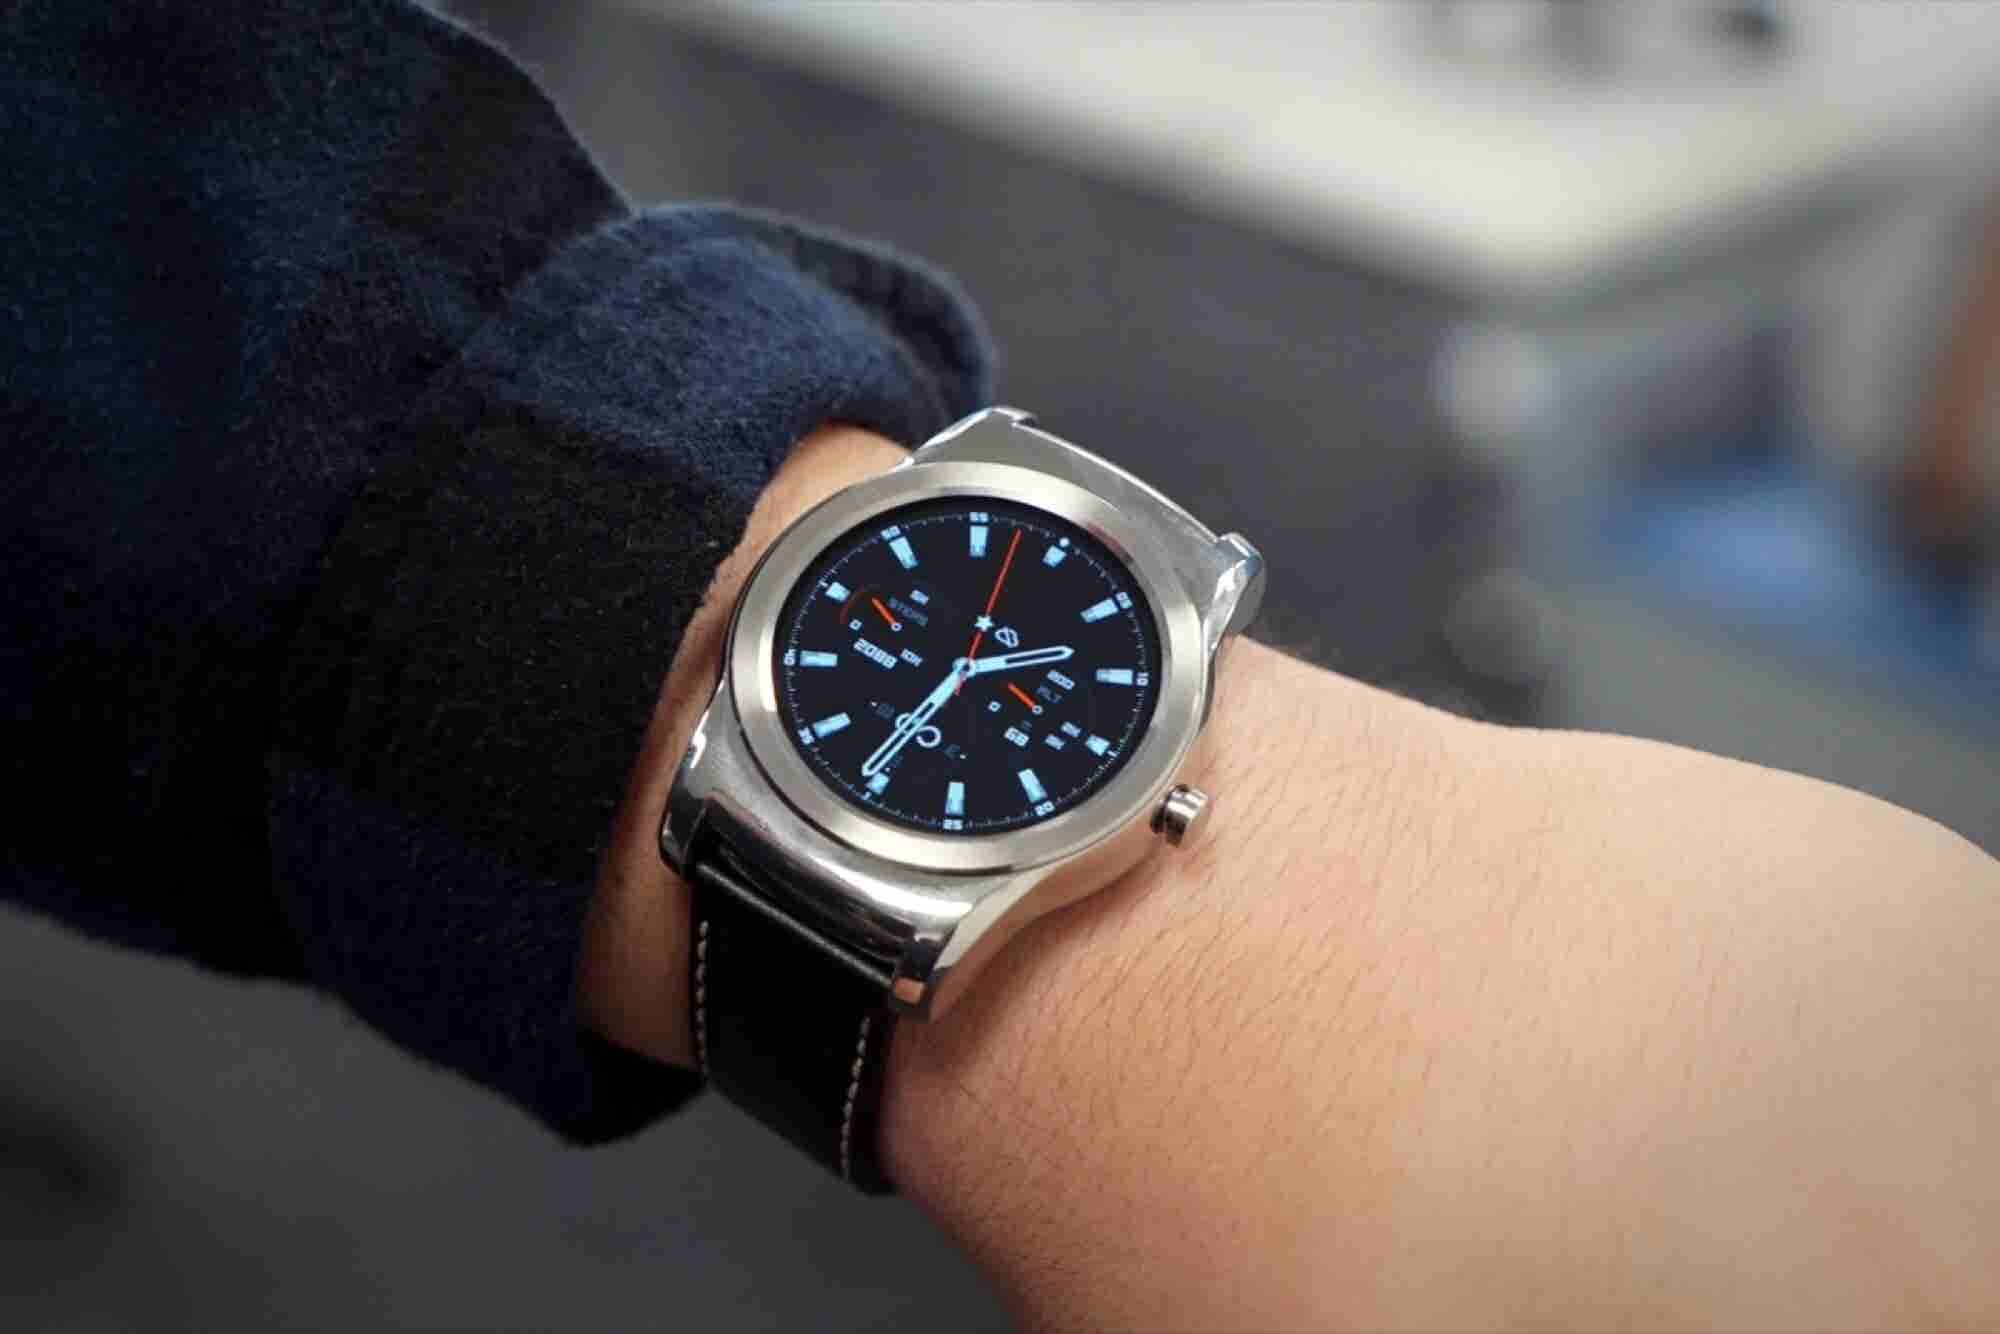 LG Watch Urbane Review: Is This the Best Android Wear Device?